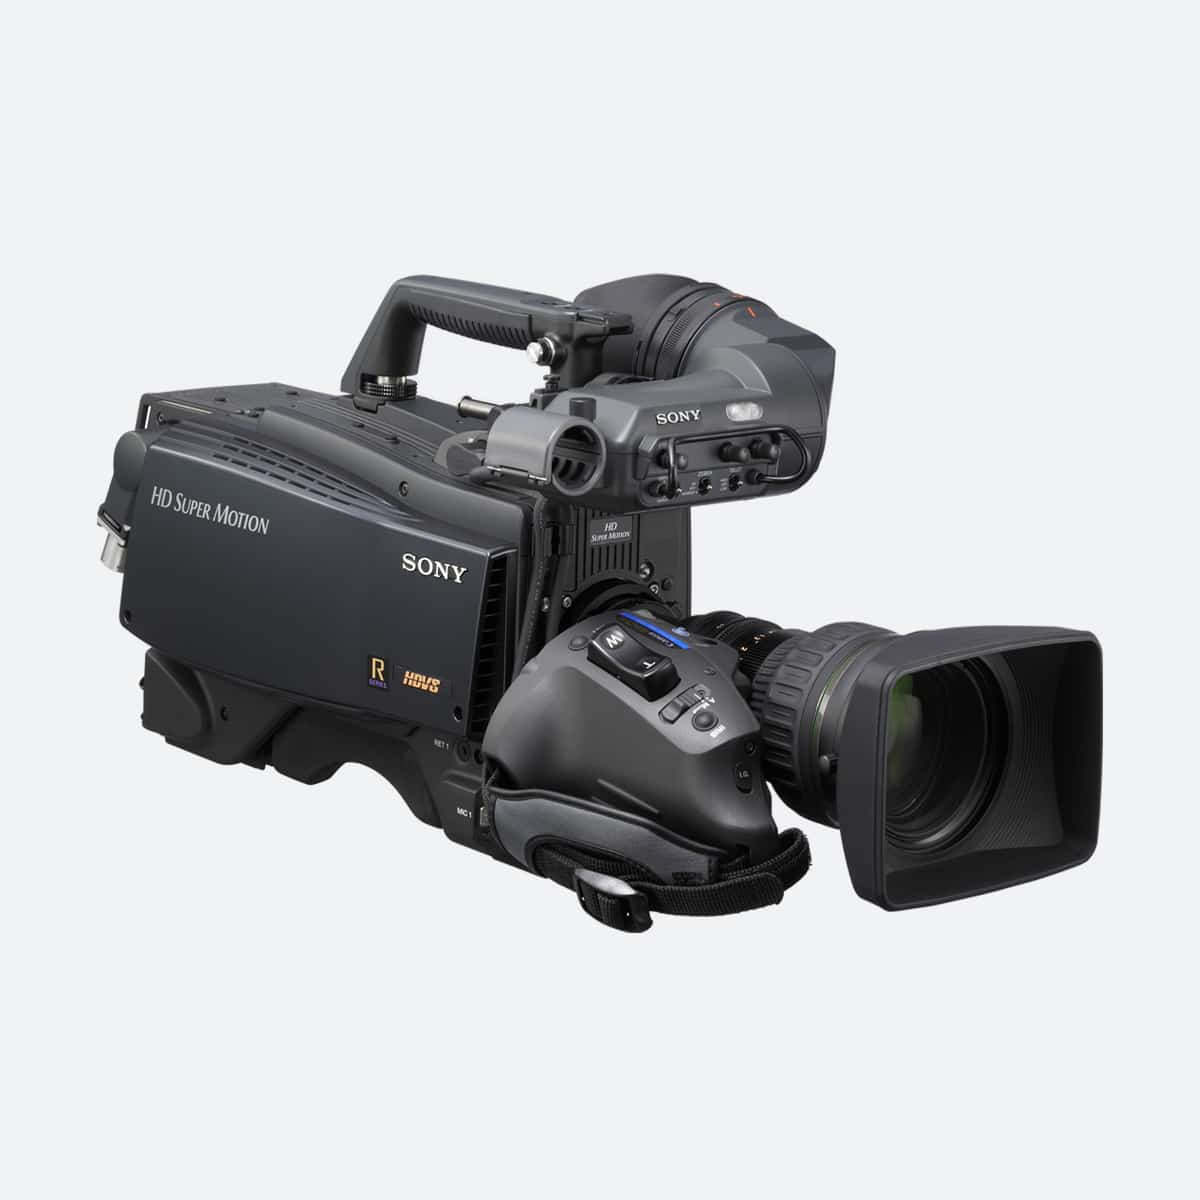 Sony HDC-3300R Super Slow Motion HD Camera Channel